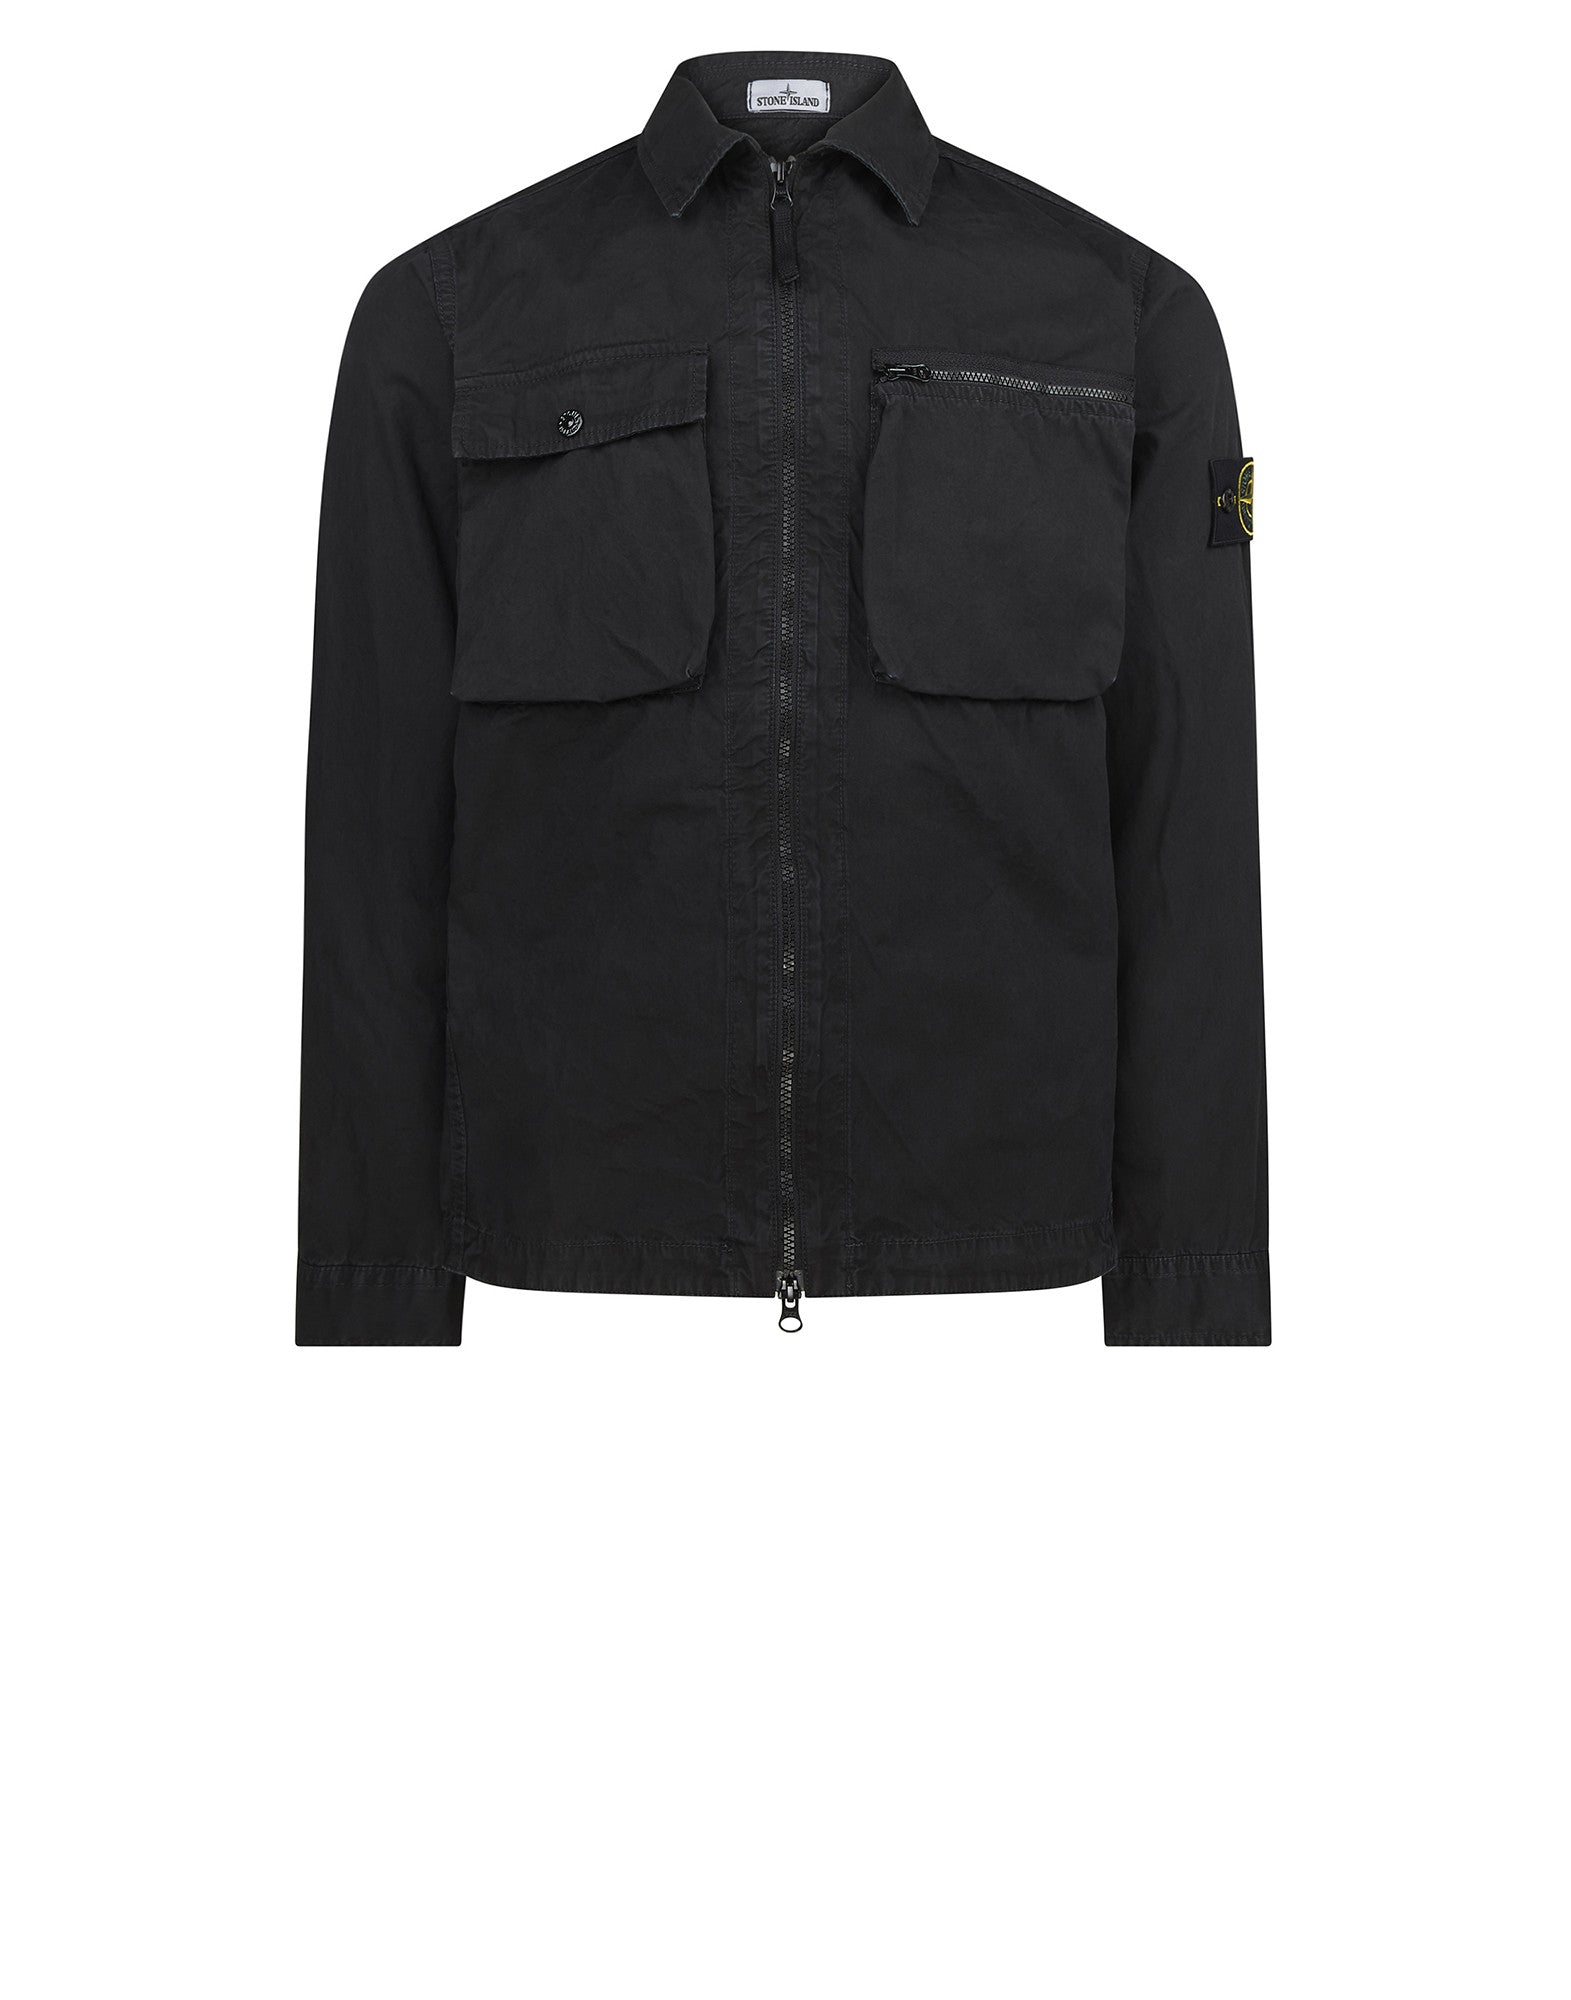 101WN T.CO+OLD Overshirt in Black